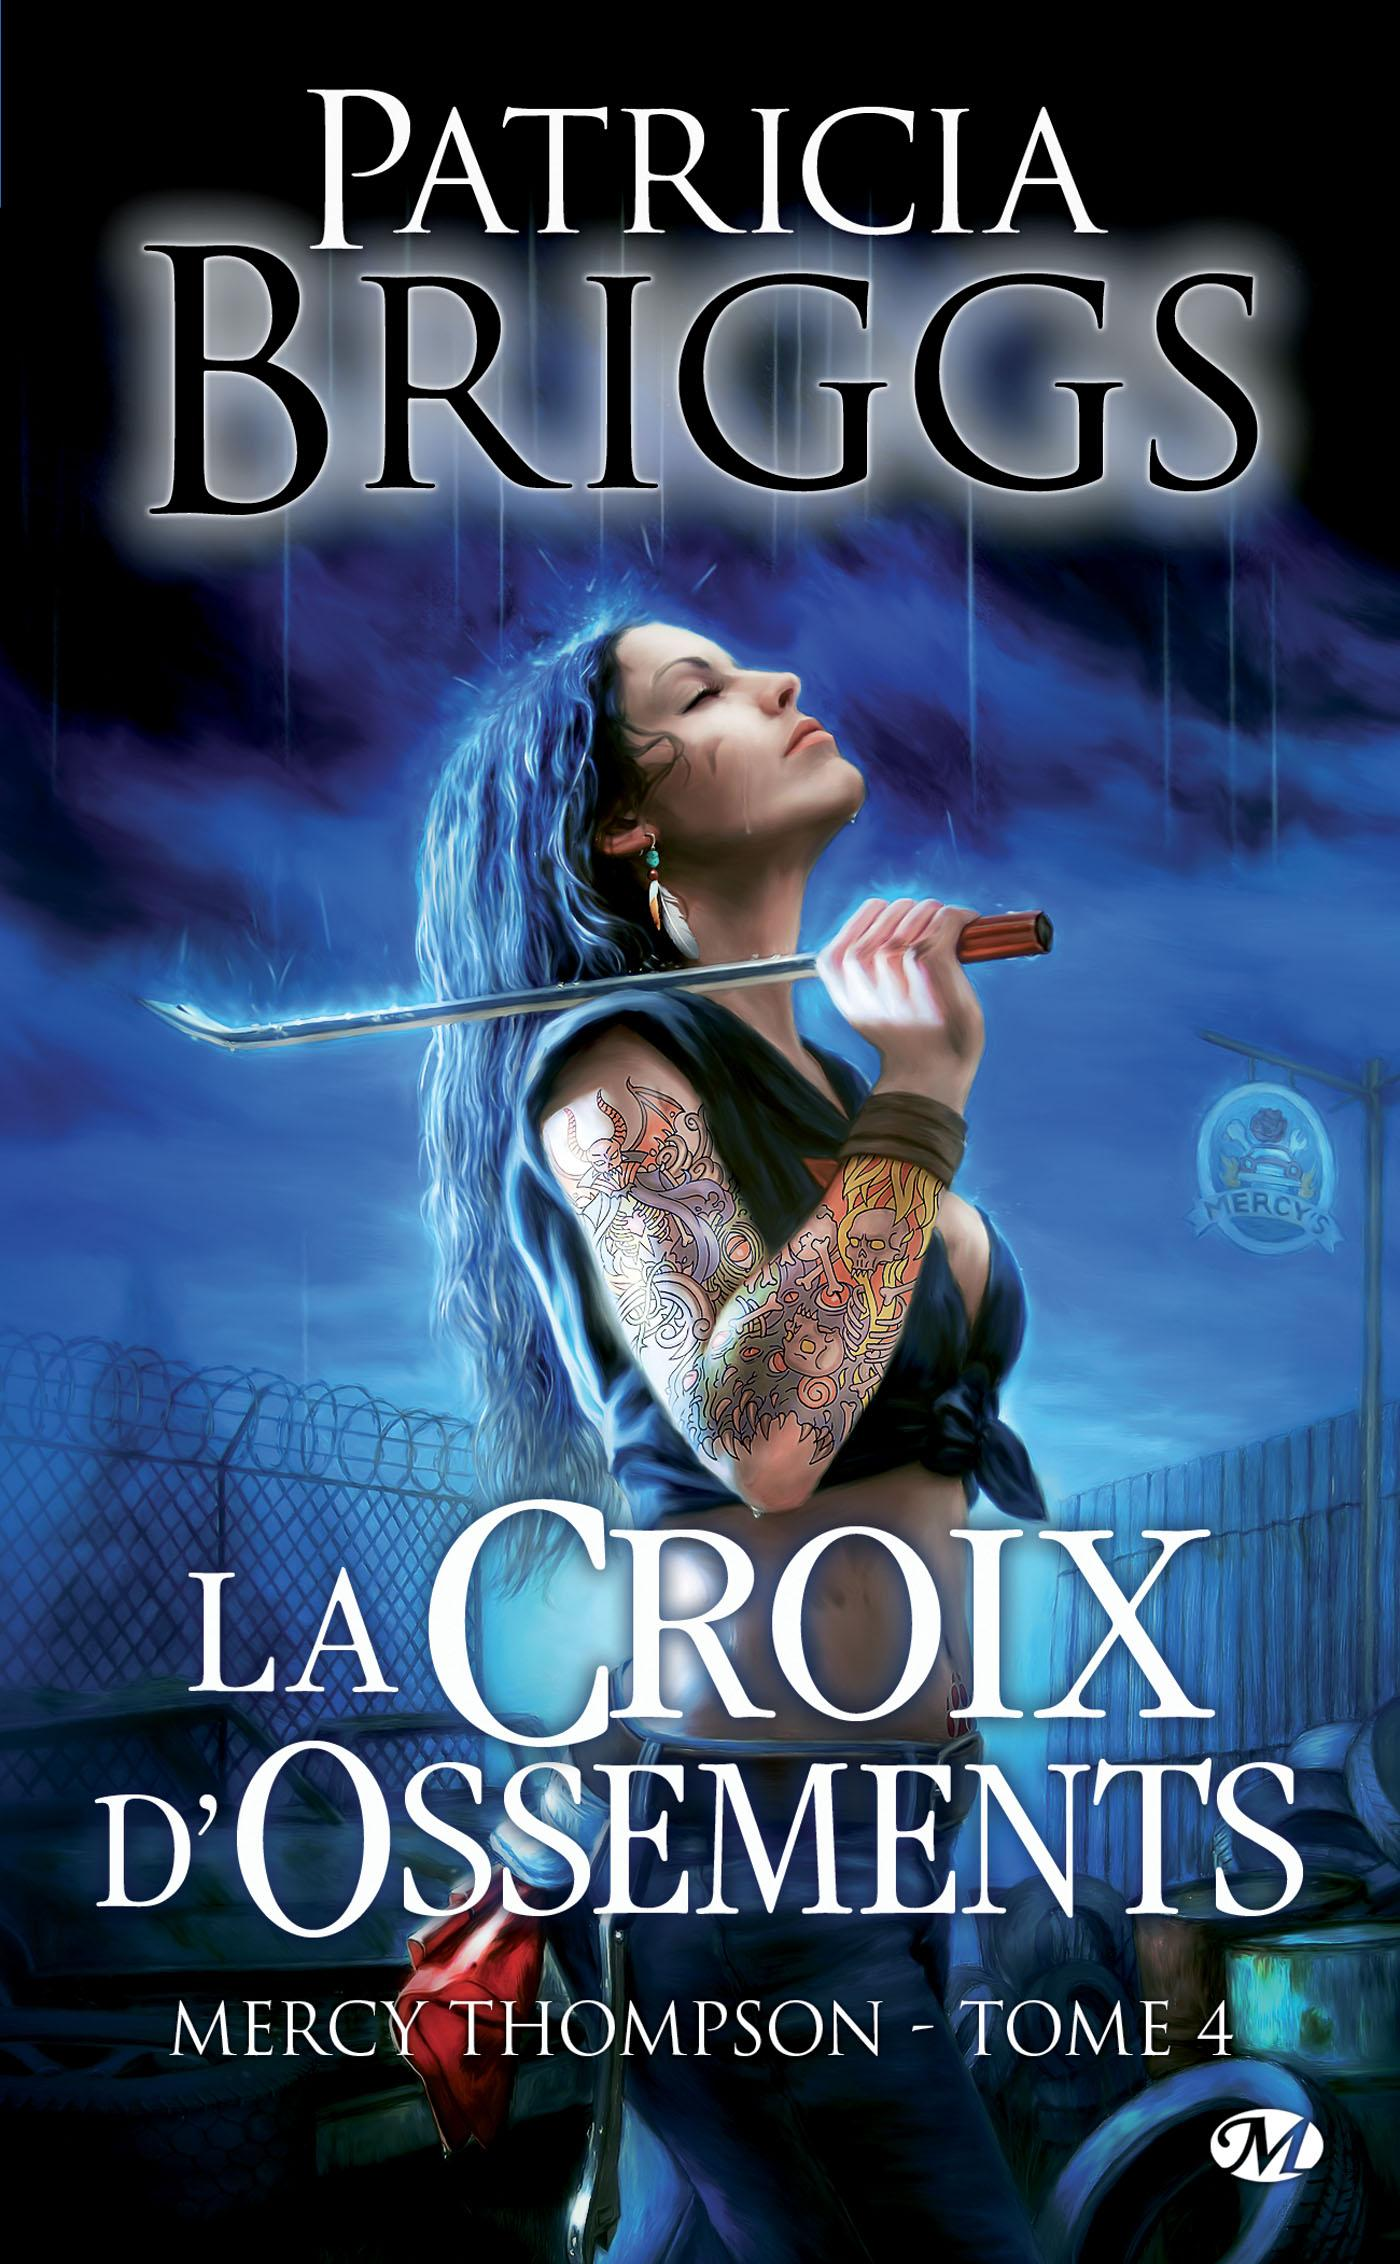 La Croix d'ossements, MERCY THOMPSON, T4